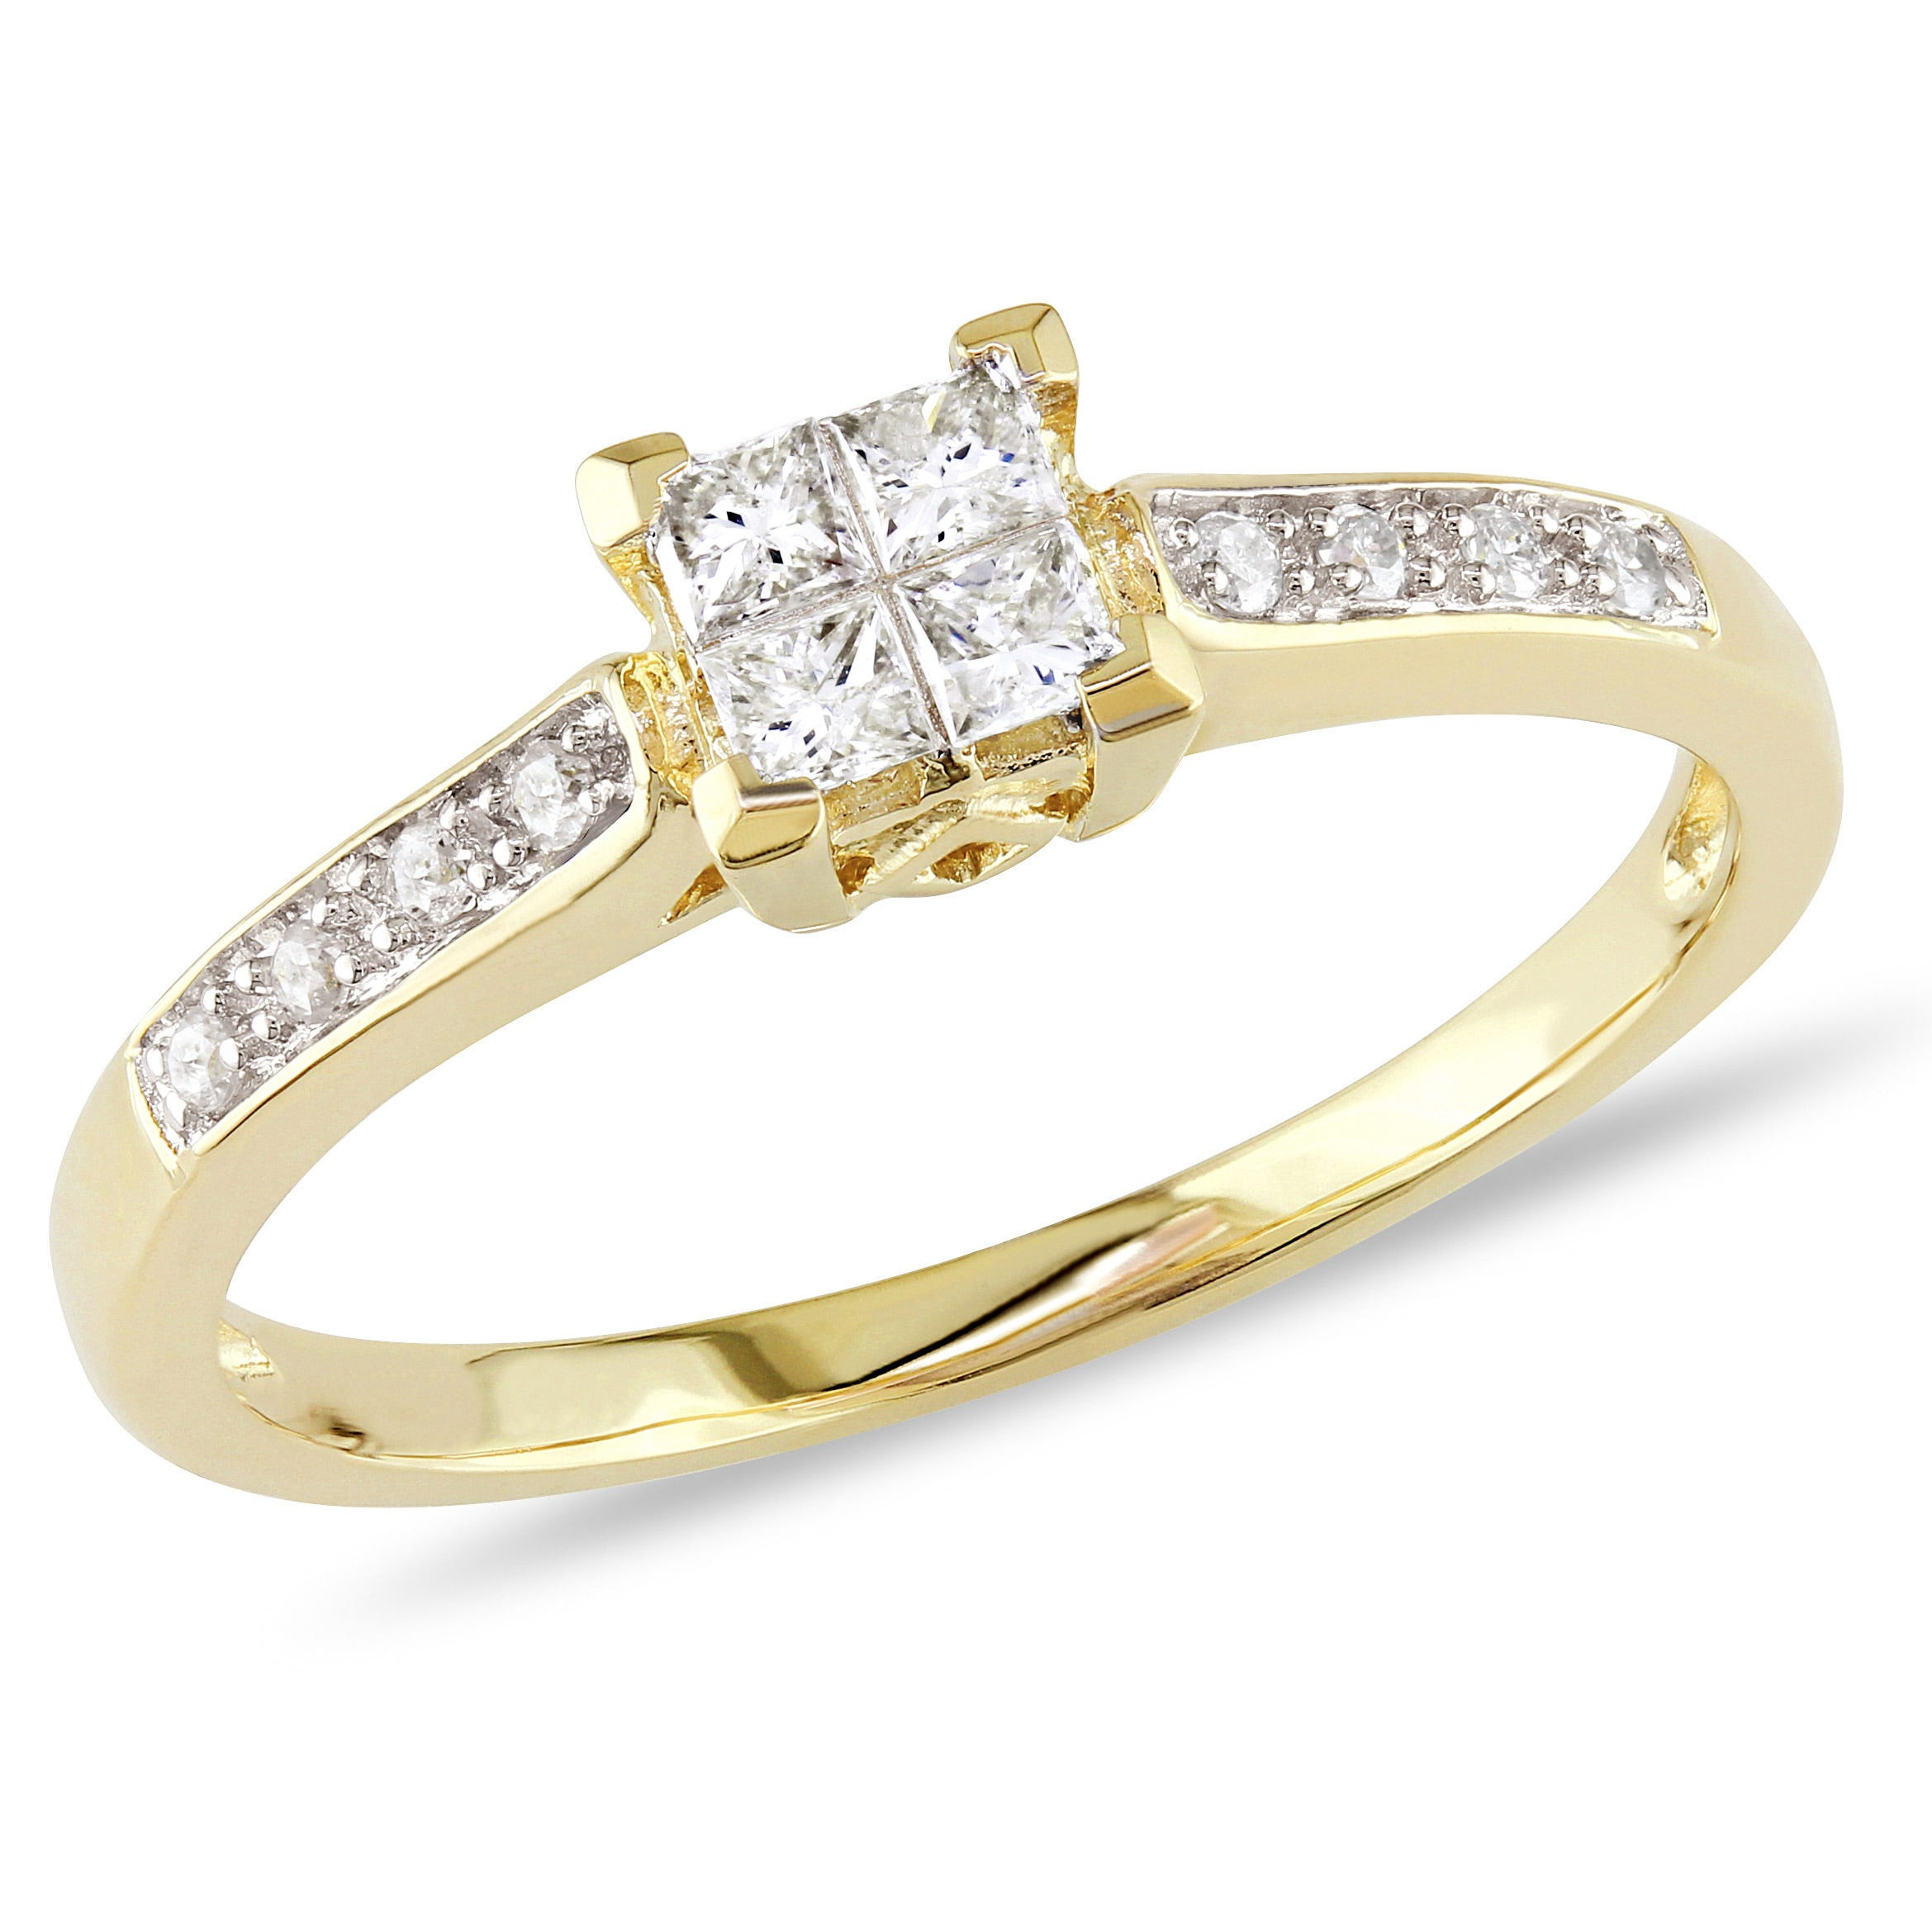 Princess & Round Cut Diamond Promise Ring 1/4ctw. in 10k Yellow Gold